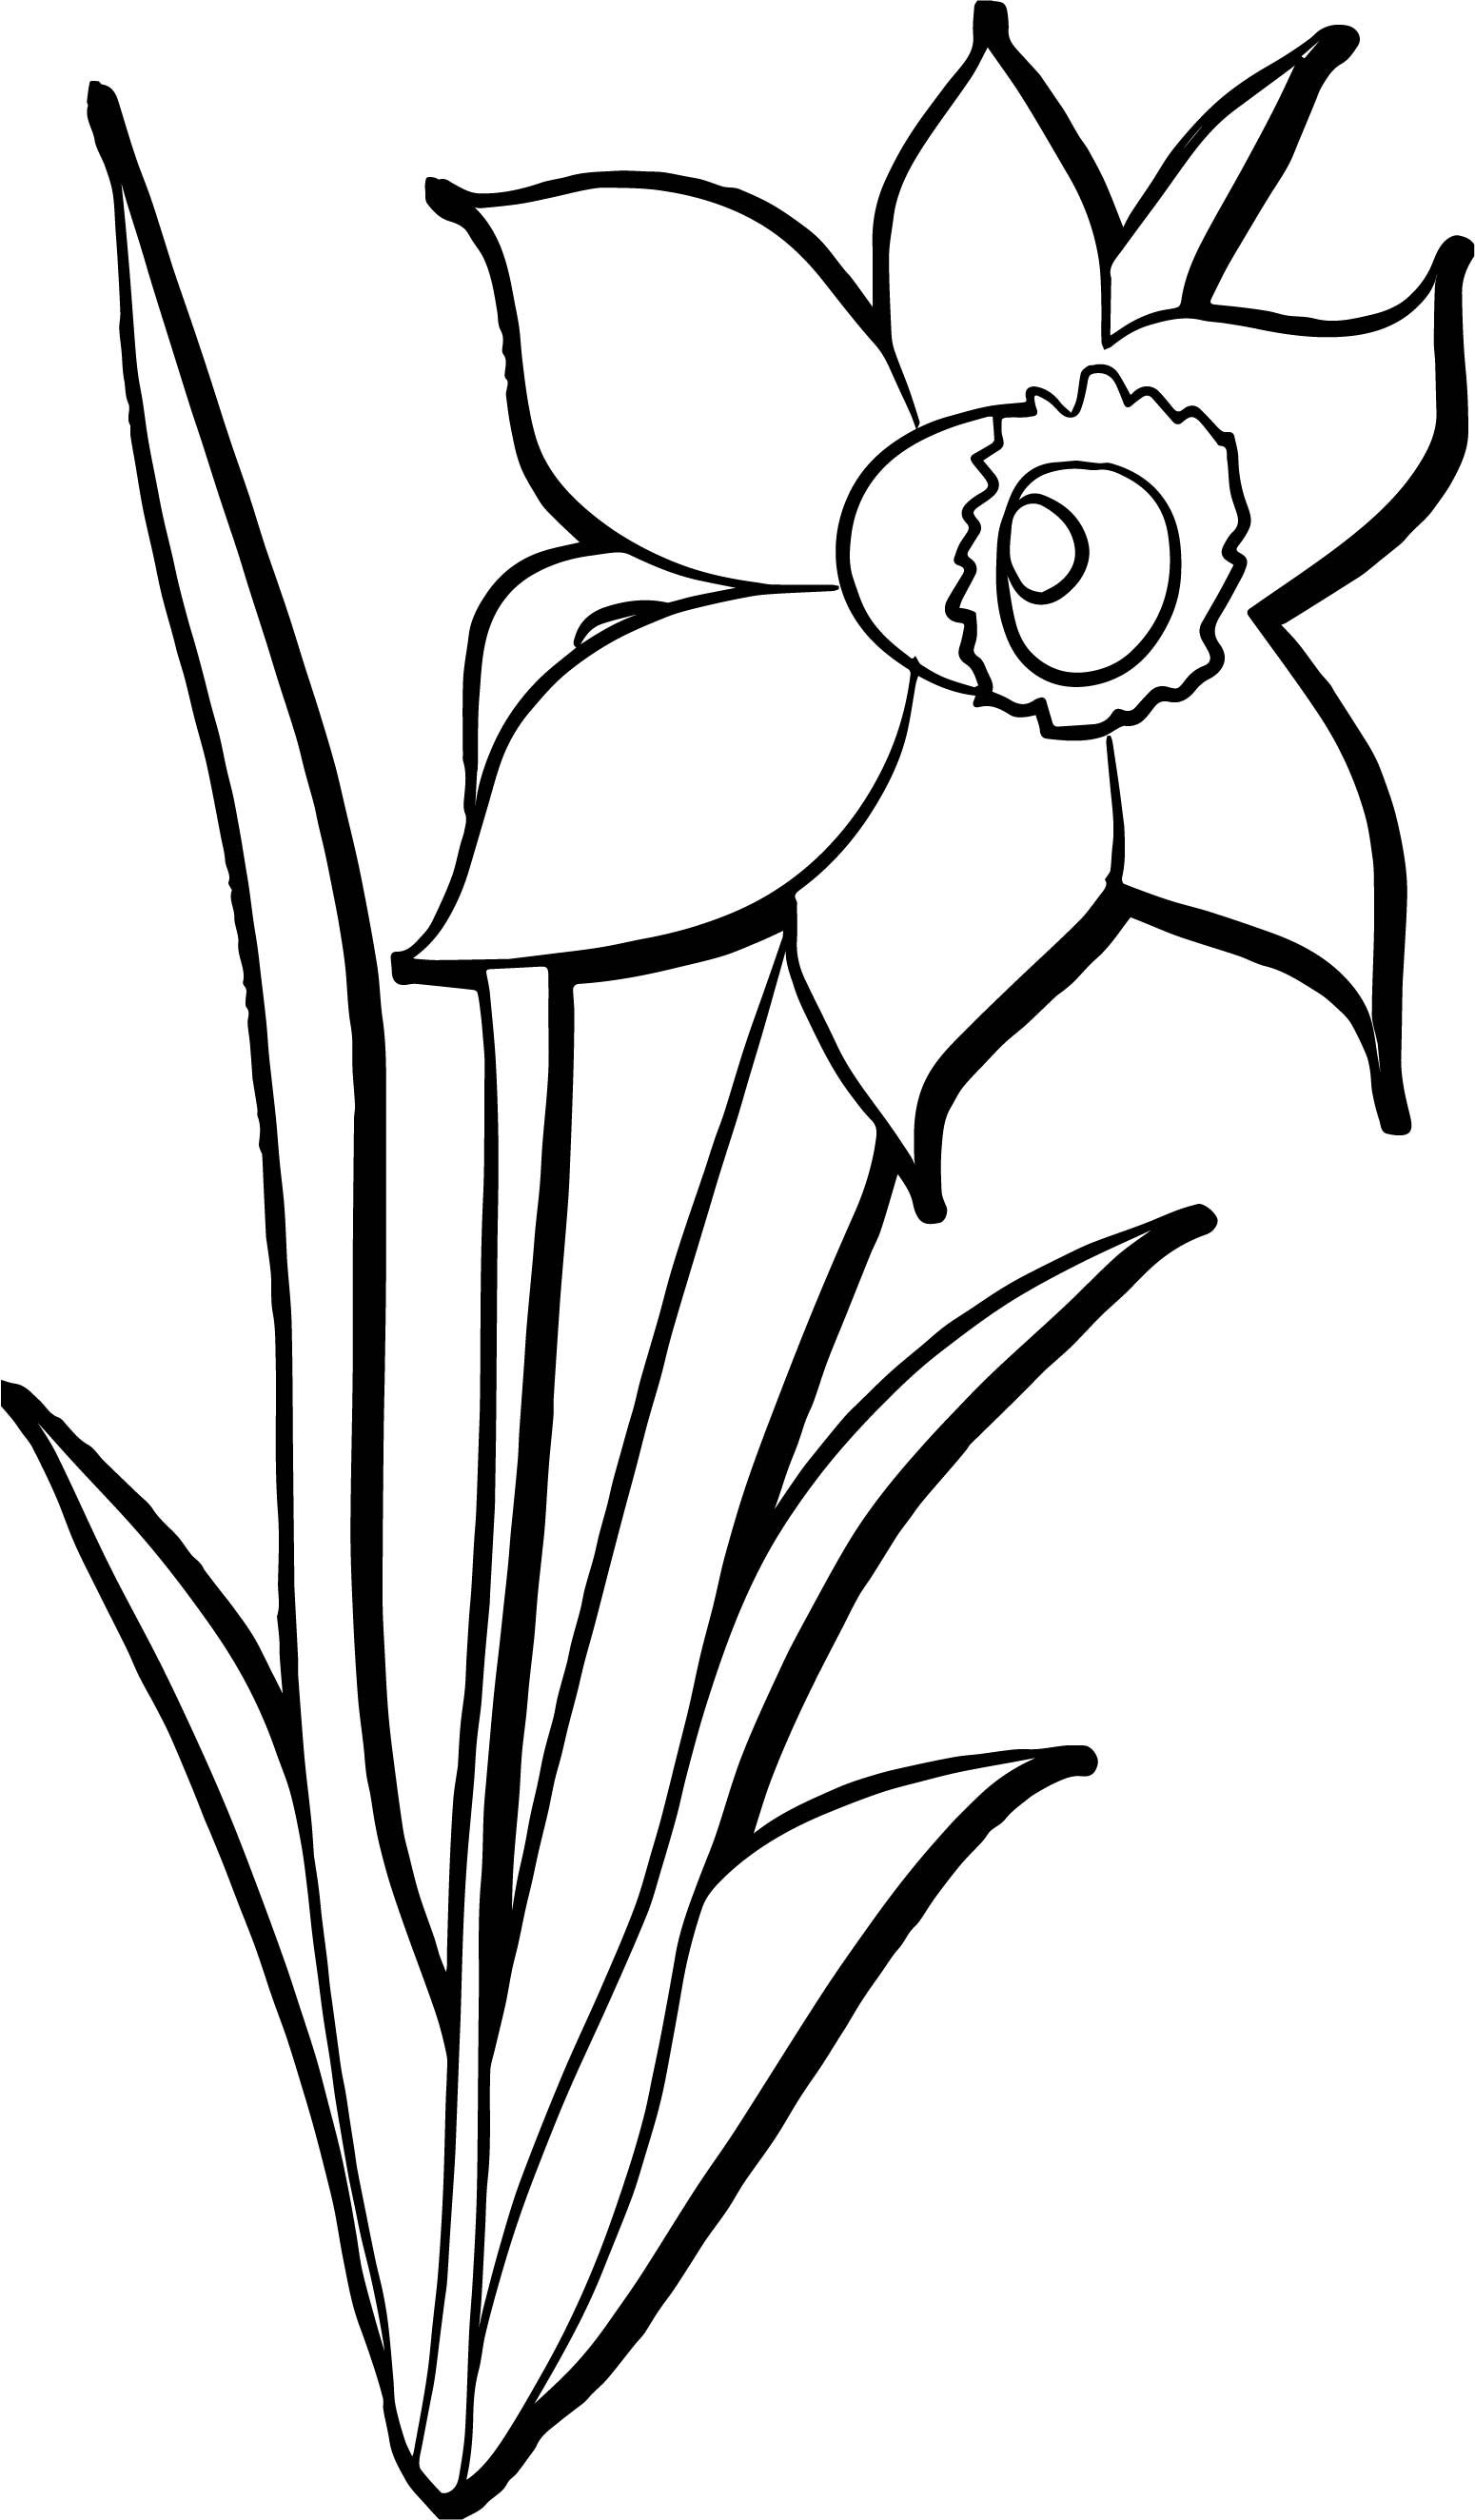 april showers bring may flowers coloring page wecoloringpage